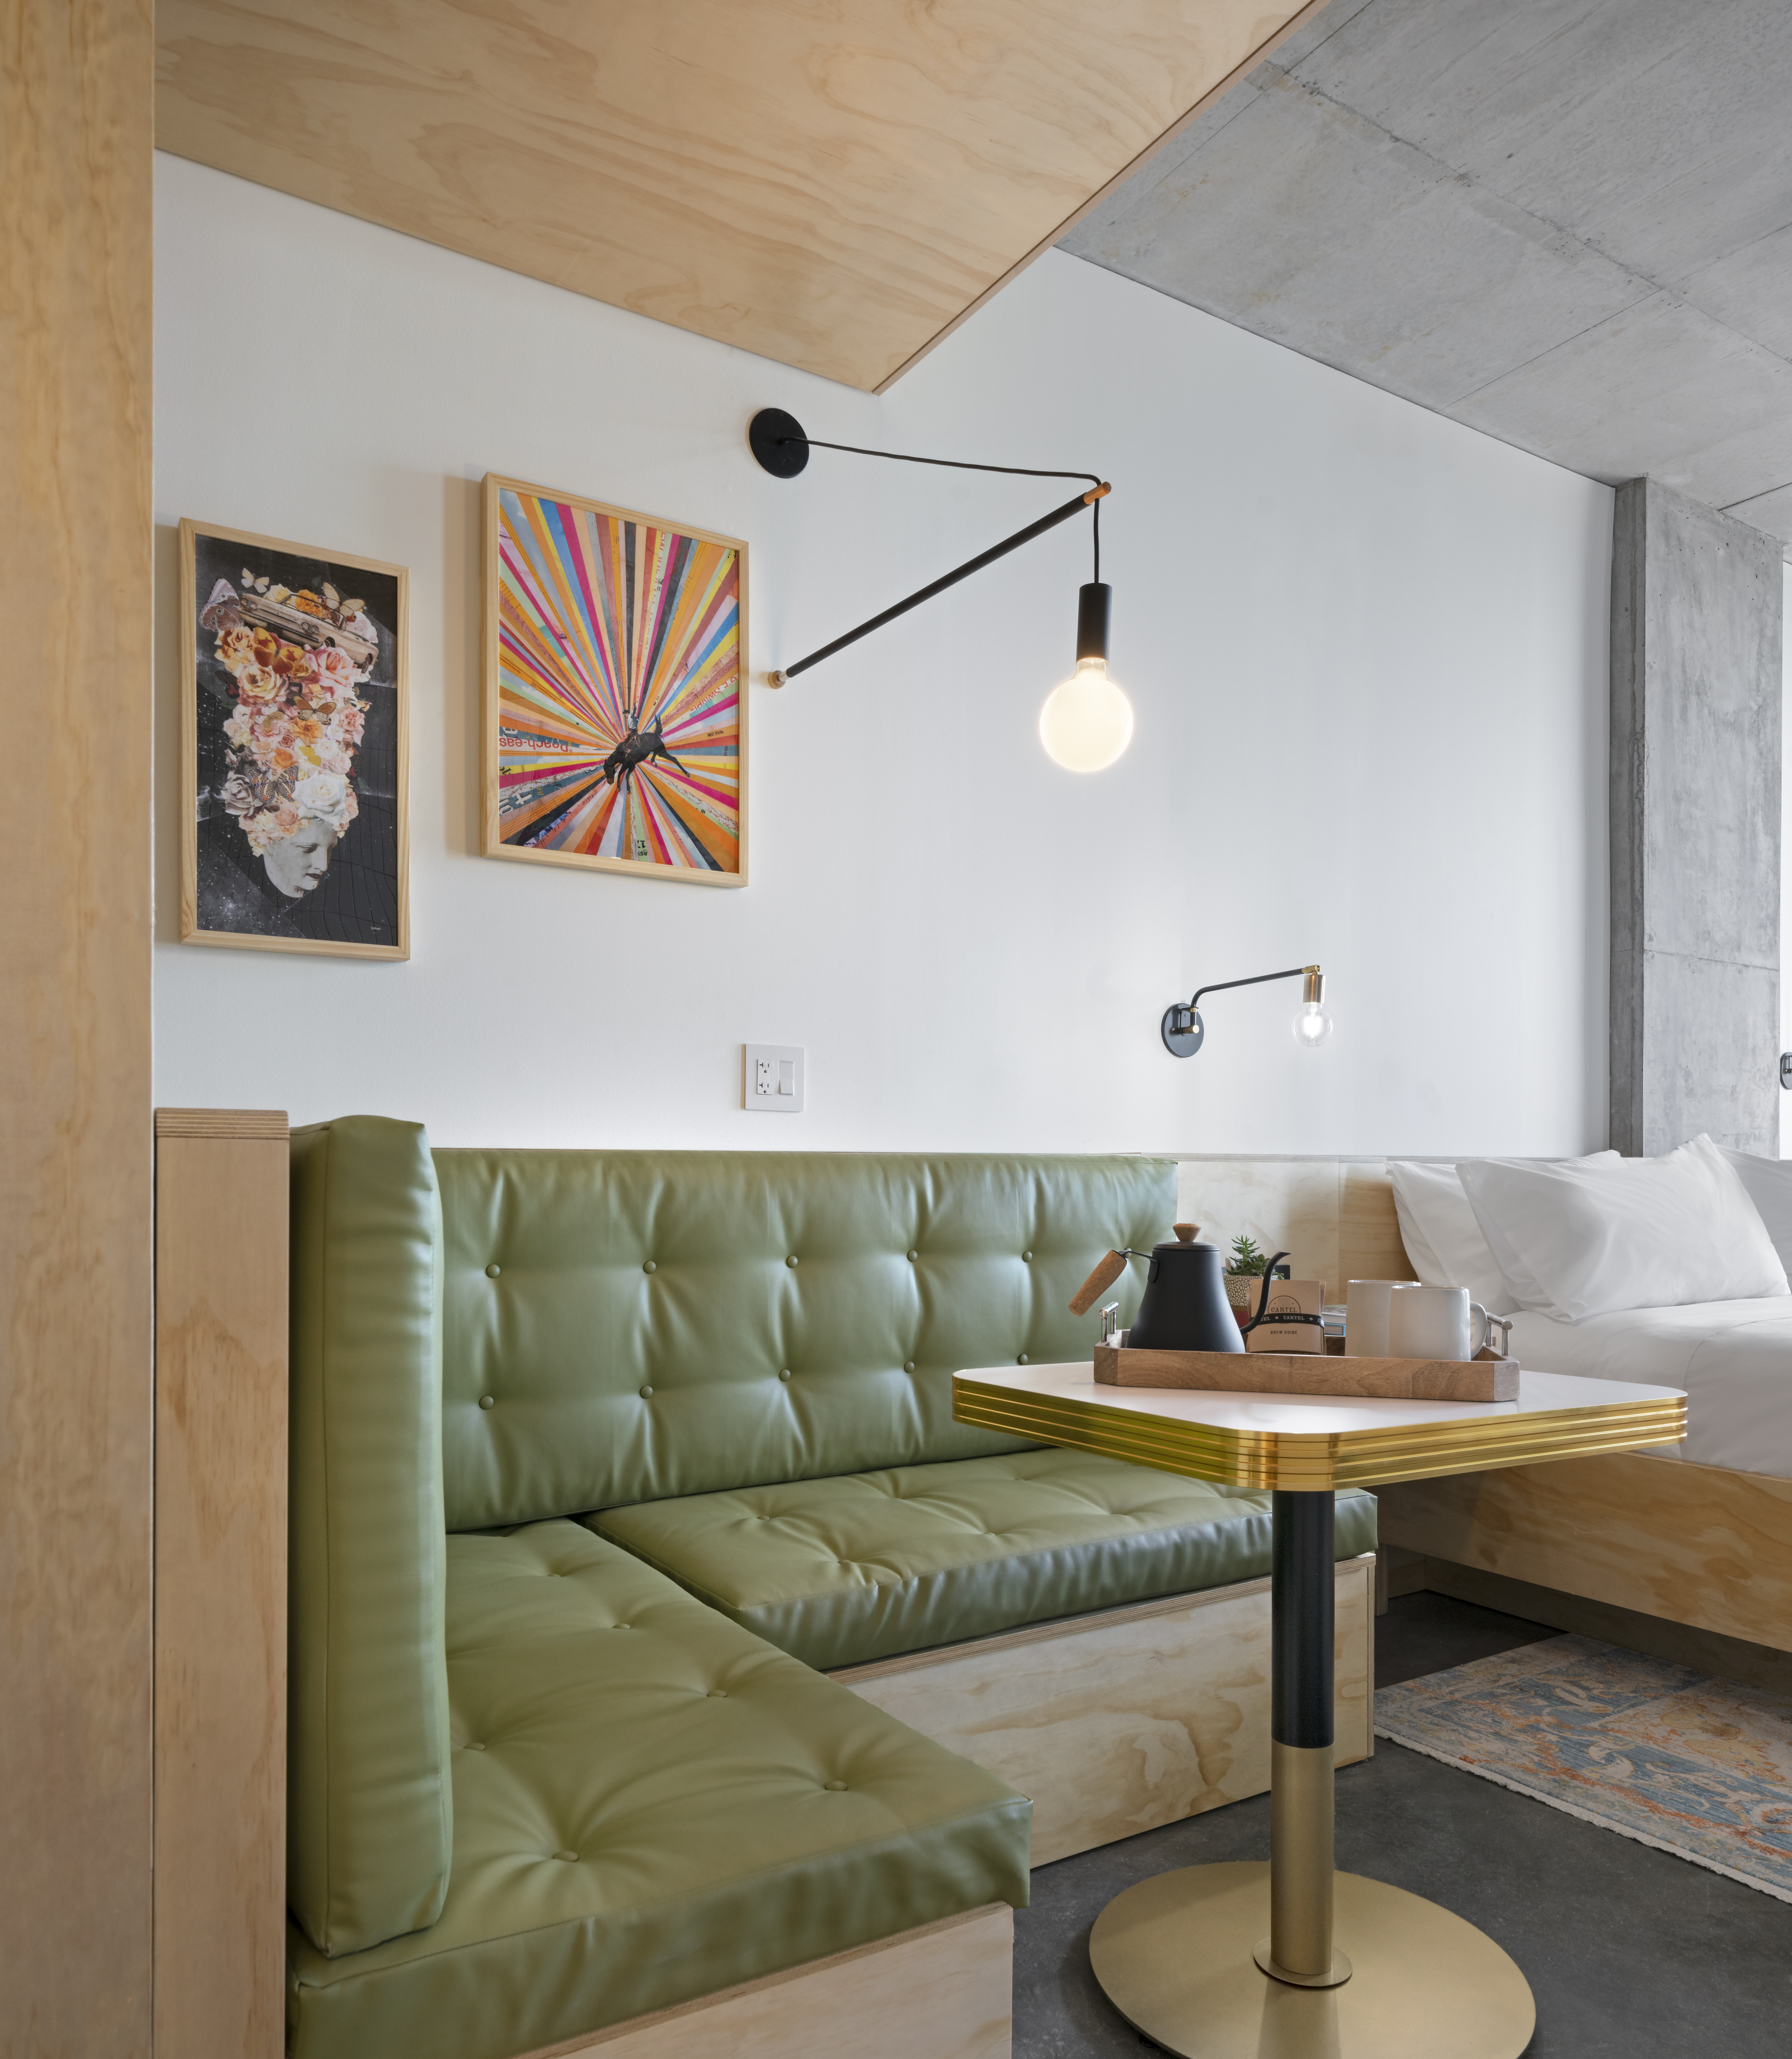 hotel room with small avocado green banquette, bed, art, mod light fixture